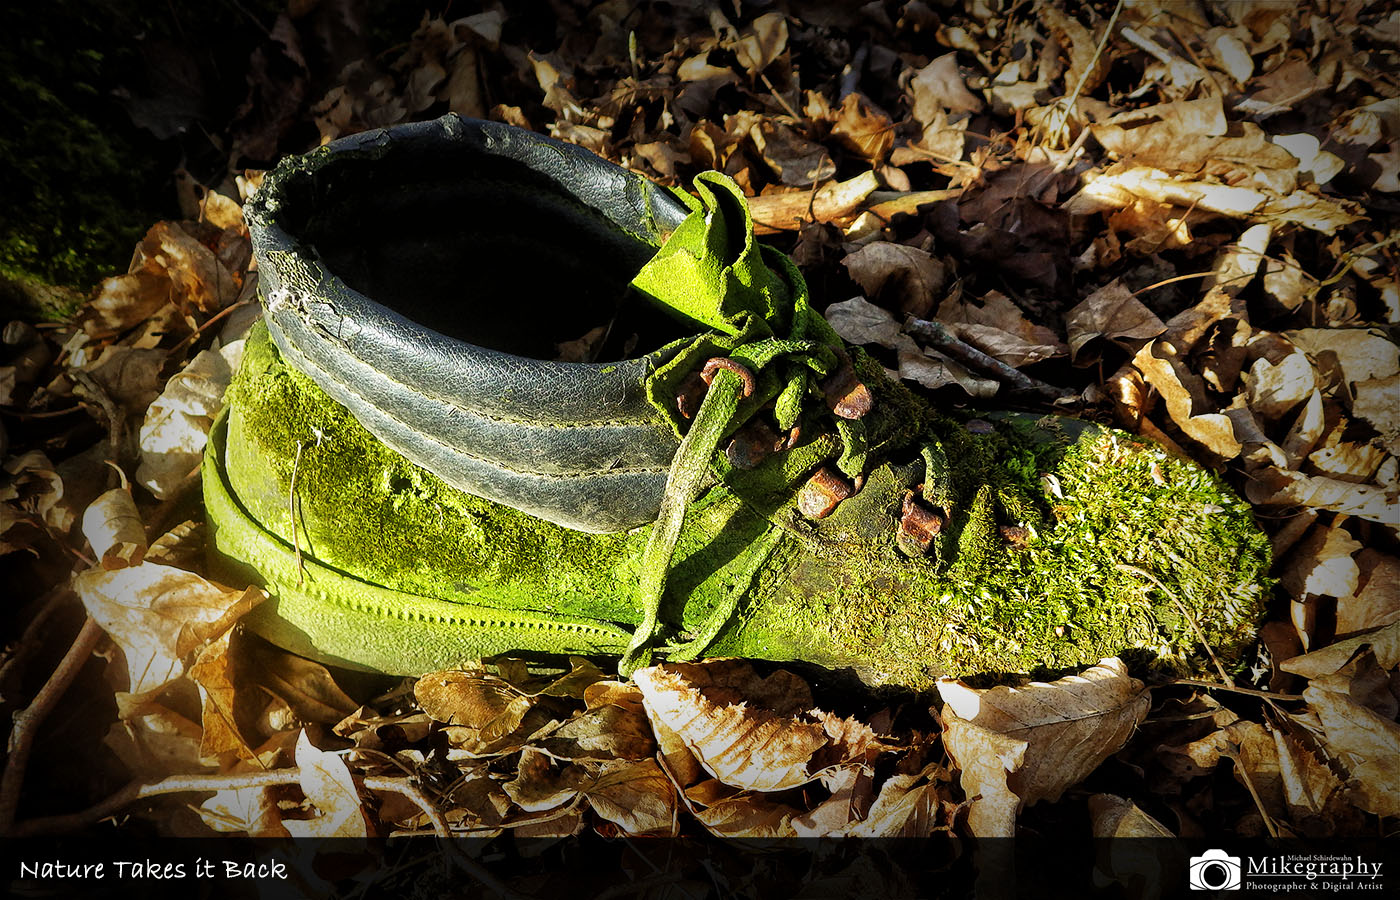 Nature Takes it Back - Schuh im Wald